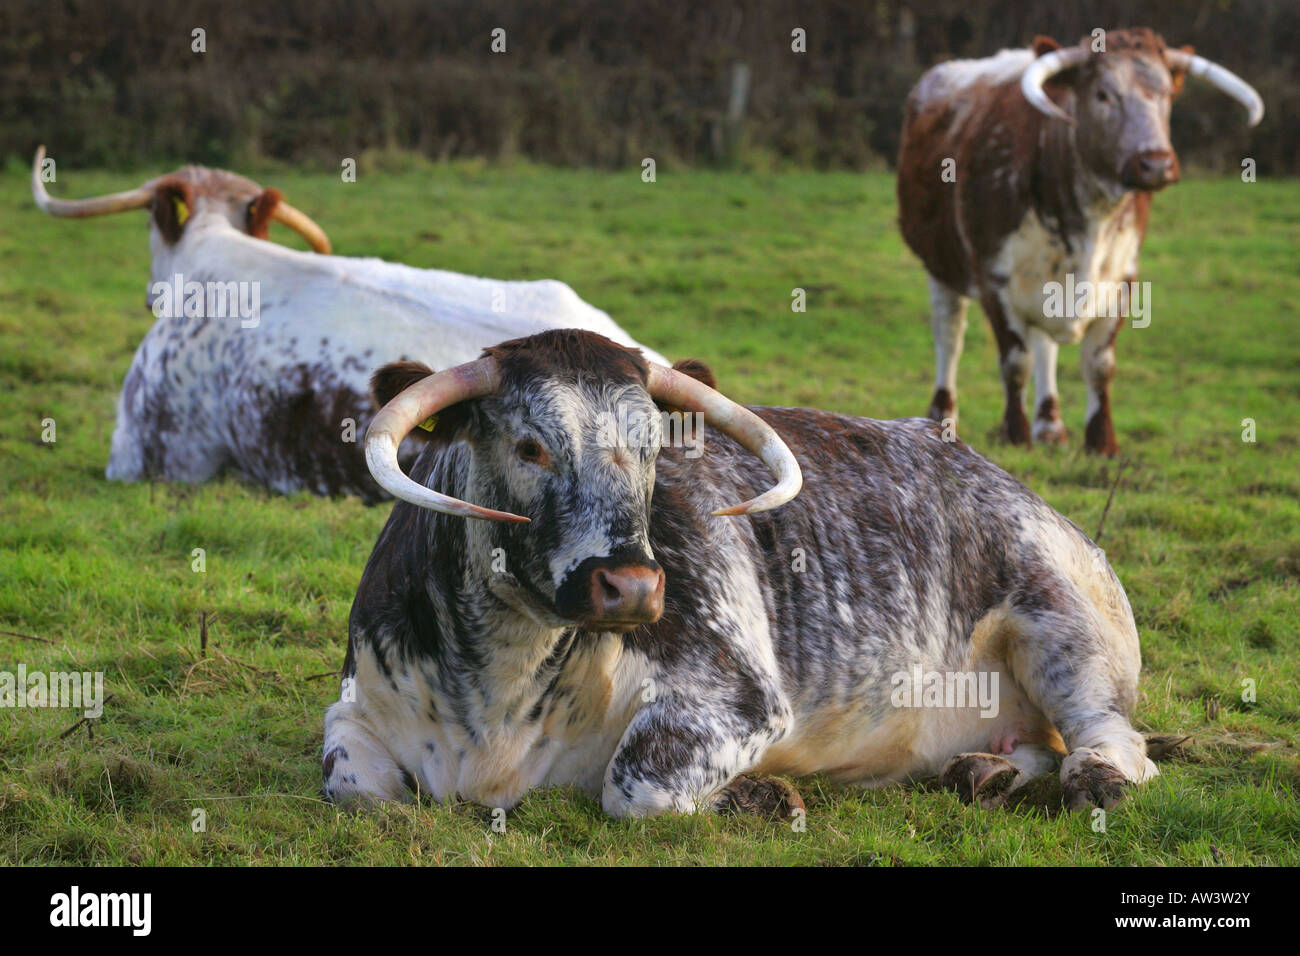 Longhorn cattle - Stock Image